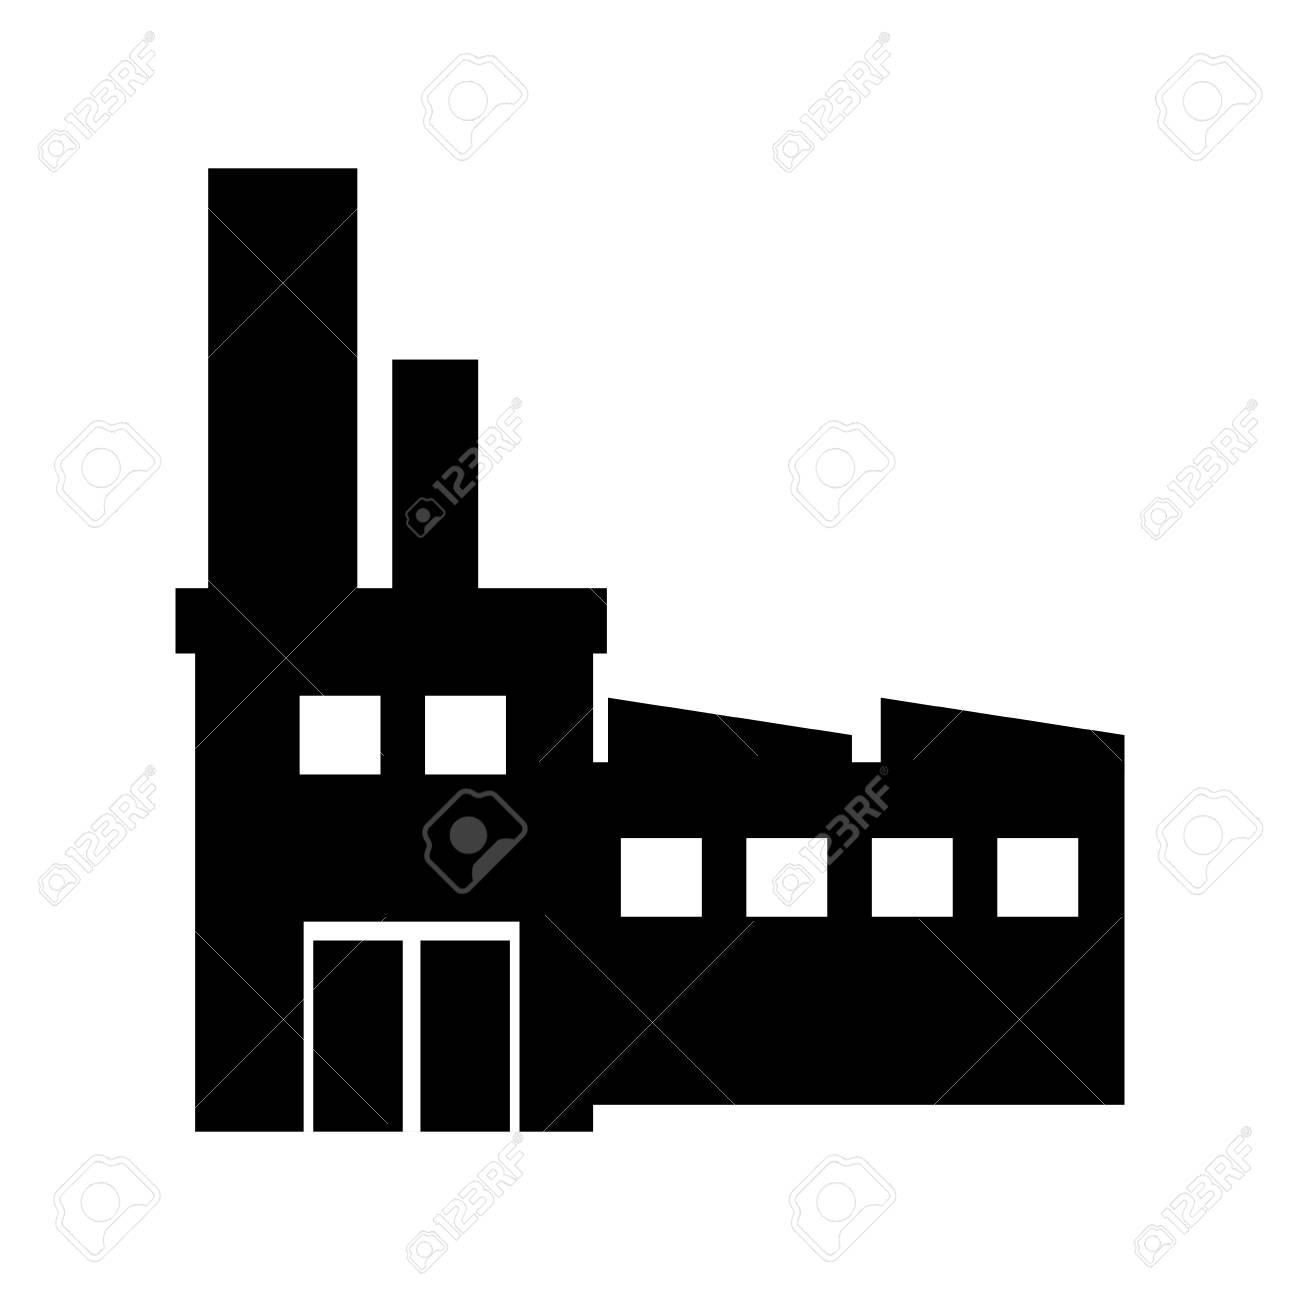 factory building and industry plant equipment silhouette vector rh 123rf com free vector building silhouette building silhouette vector png